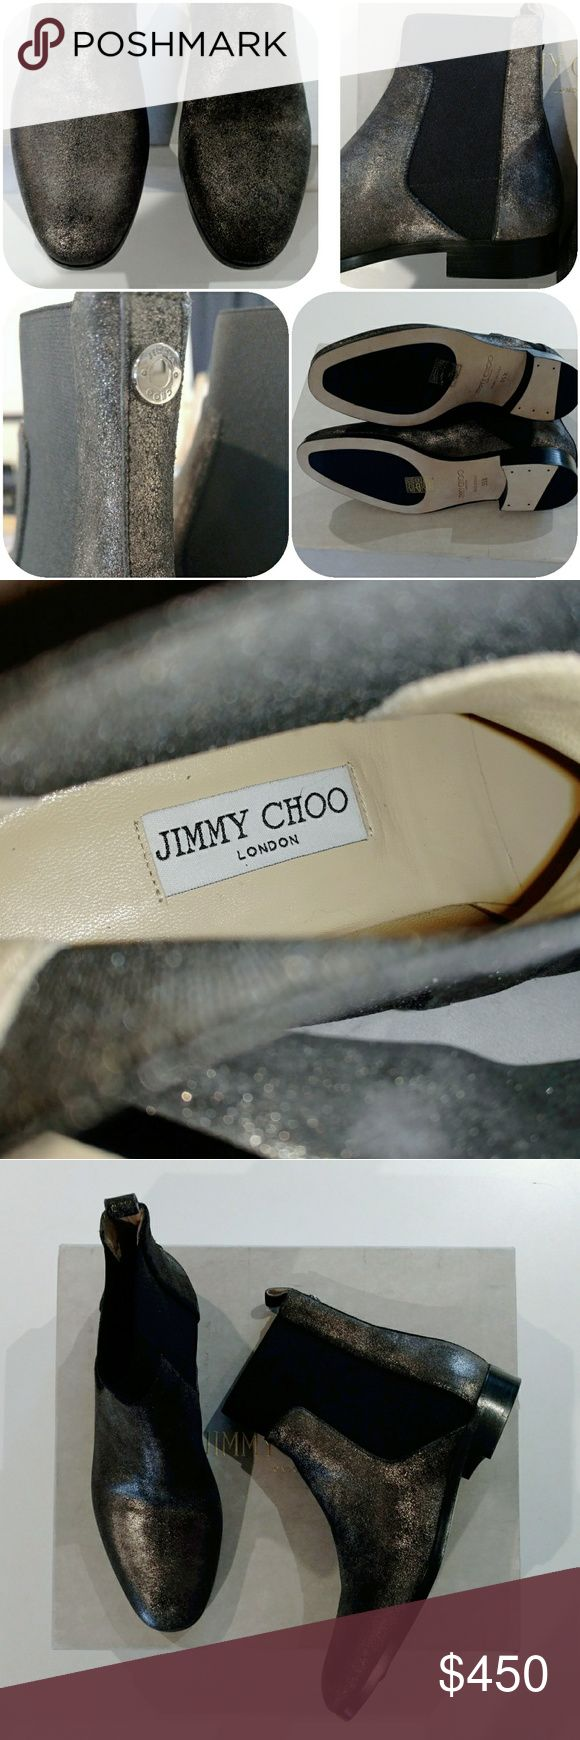 🆕NIB🆕Jimmy Choo Hallow Leather Chelsea Boots Shine bright in these shimmering Suede black + gold ankle boots exclusively by Jimmy Choo!  Size 5.5 on sole, Color: Anthracite, brand new in box!  Retails for $975+ tax. New in box + duster (box has some scuffing from handling.)  No trades. Jimmy Choo Shoes Ankle Boots & Booties #jimmychooshoes